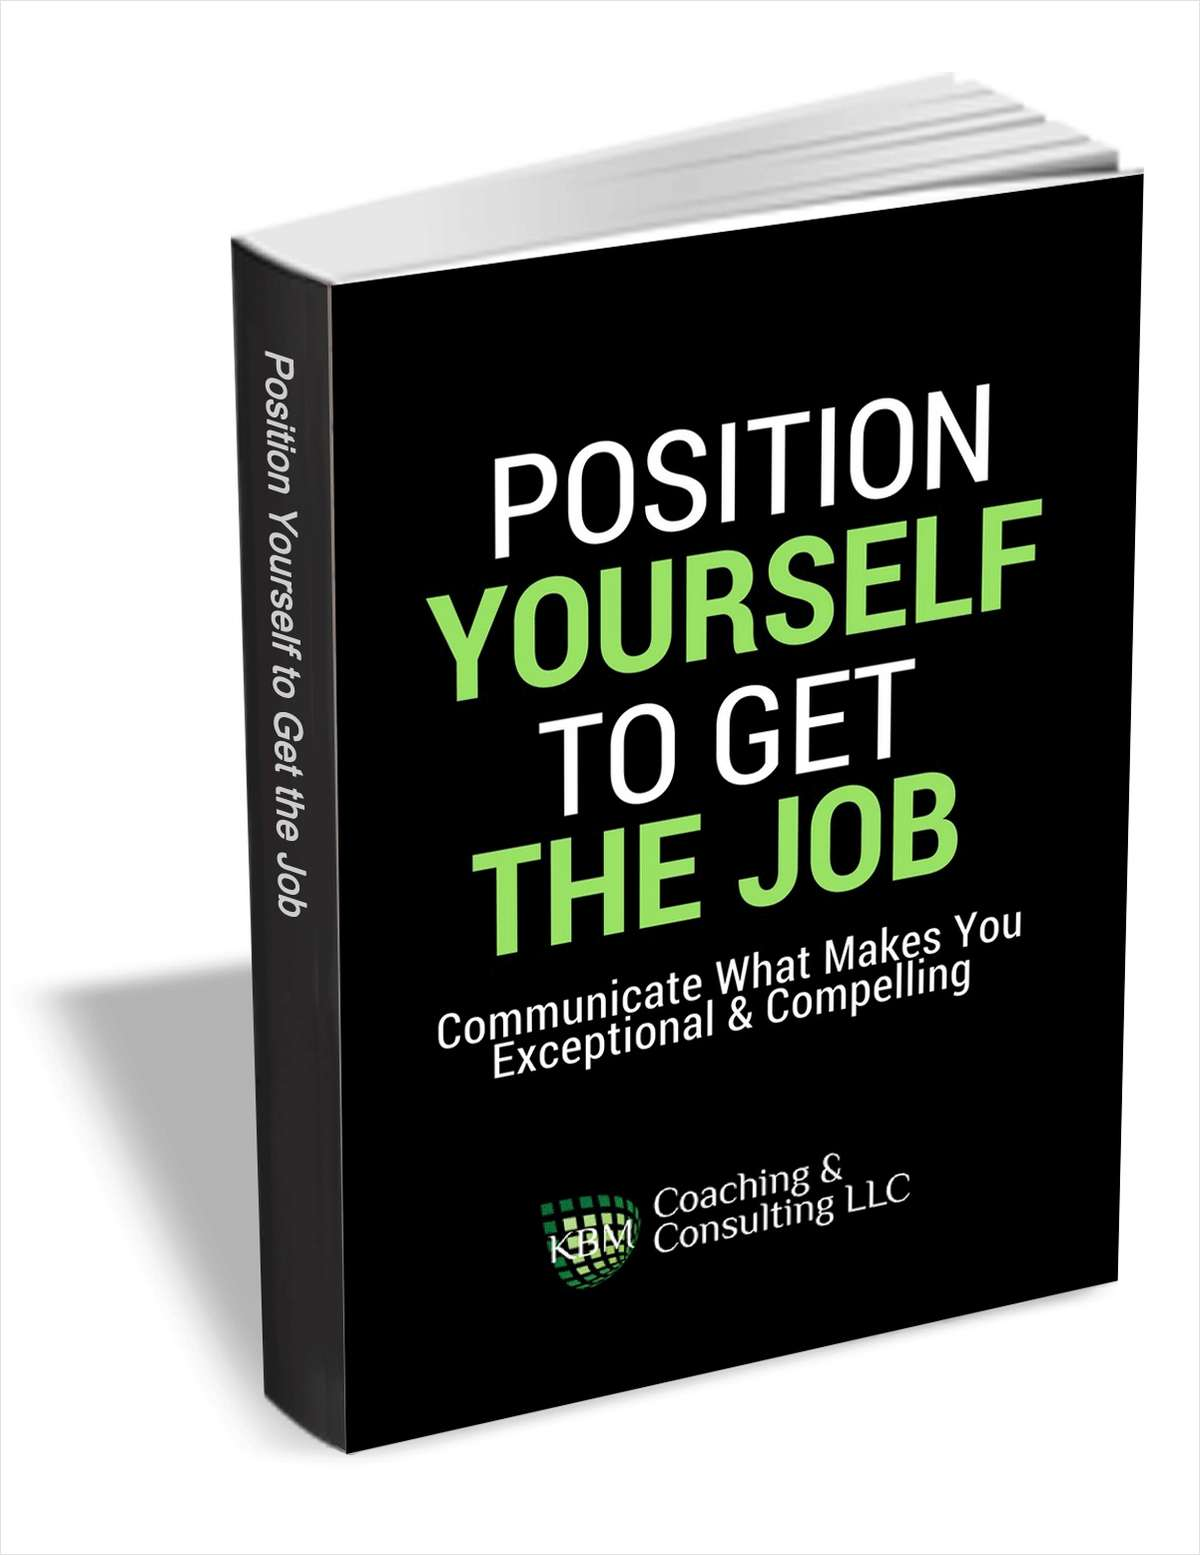 Position Yourself to Get the Job